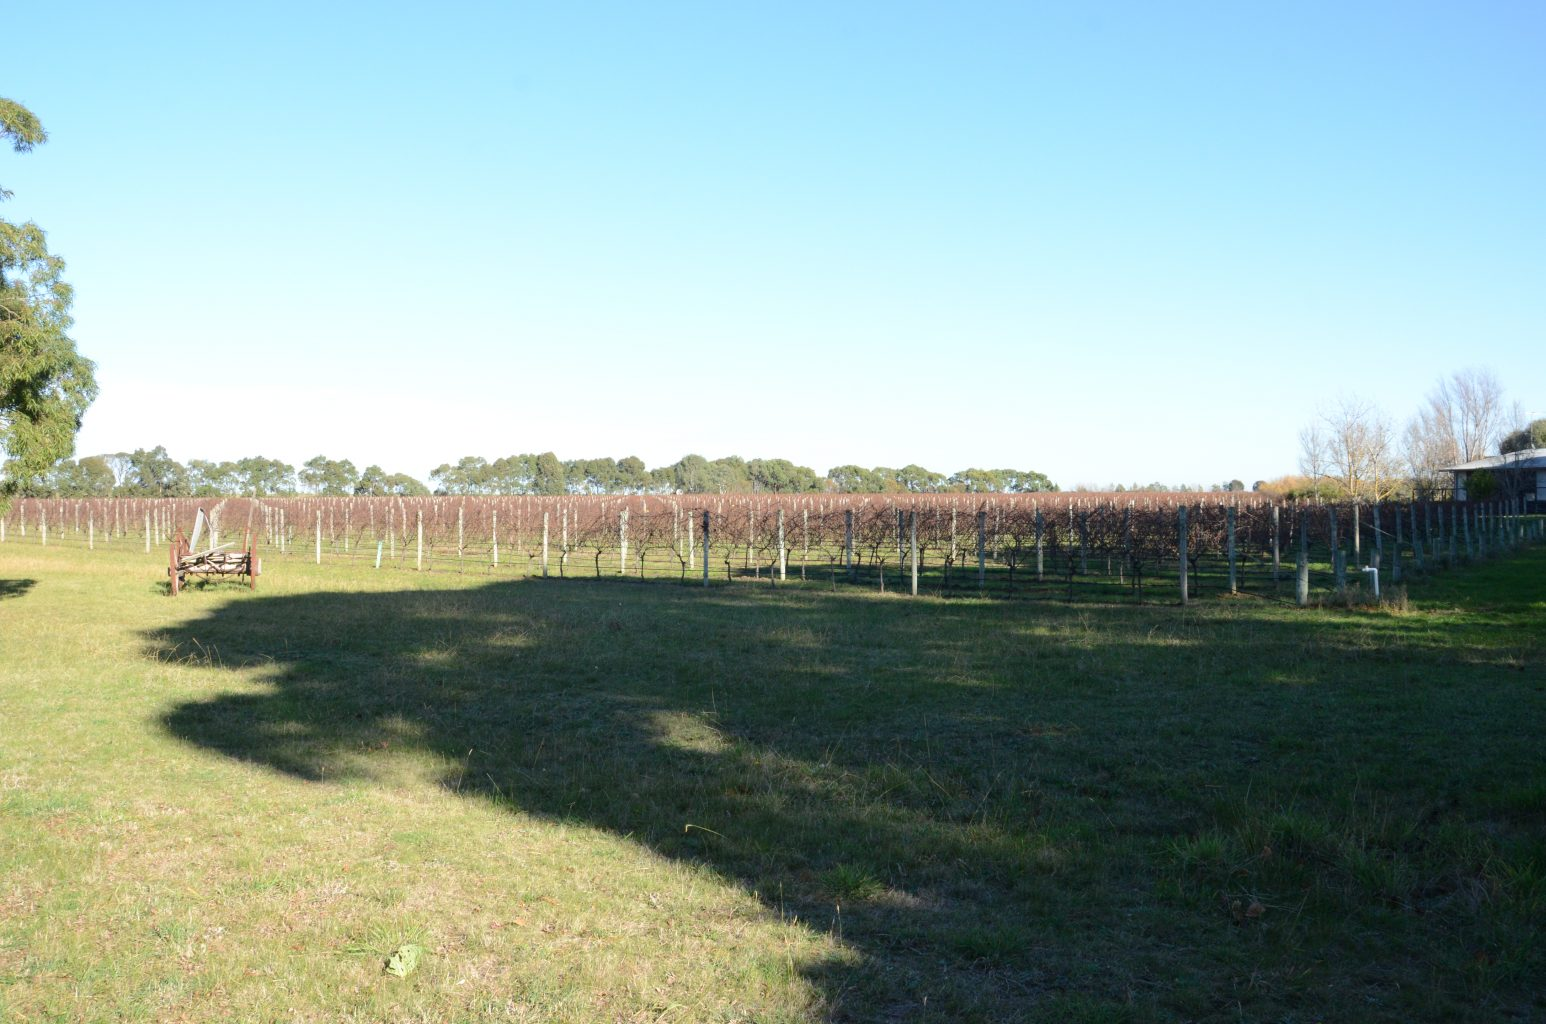 These grape vines  will be subdivided